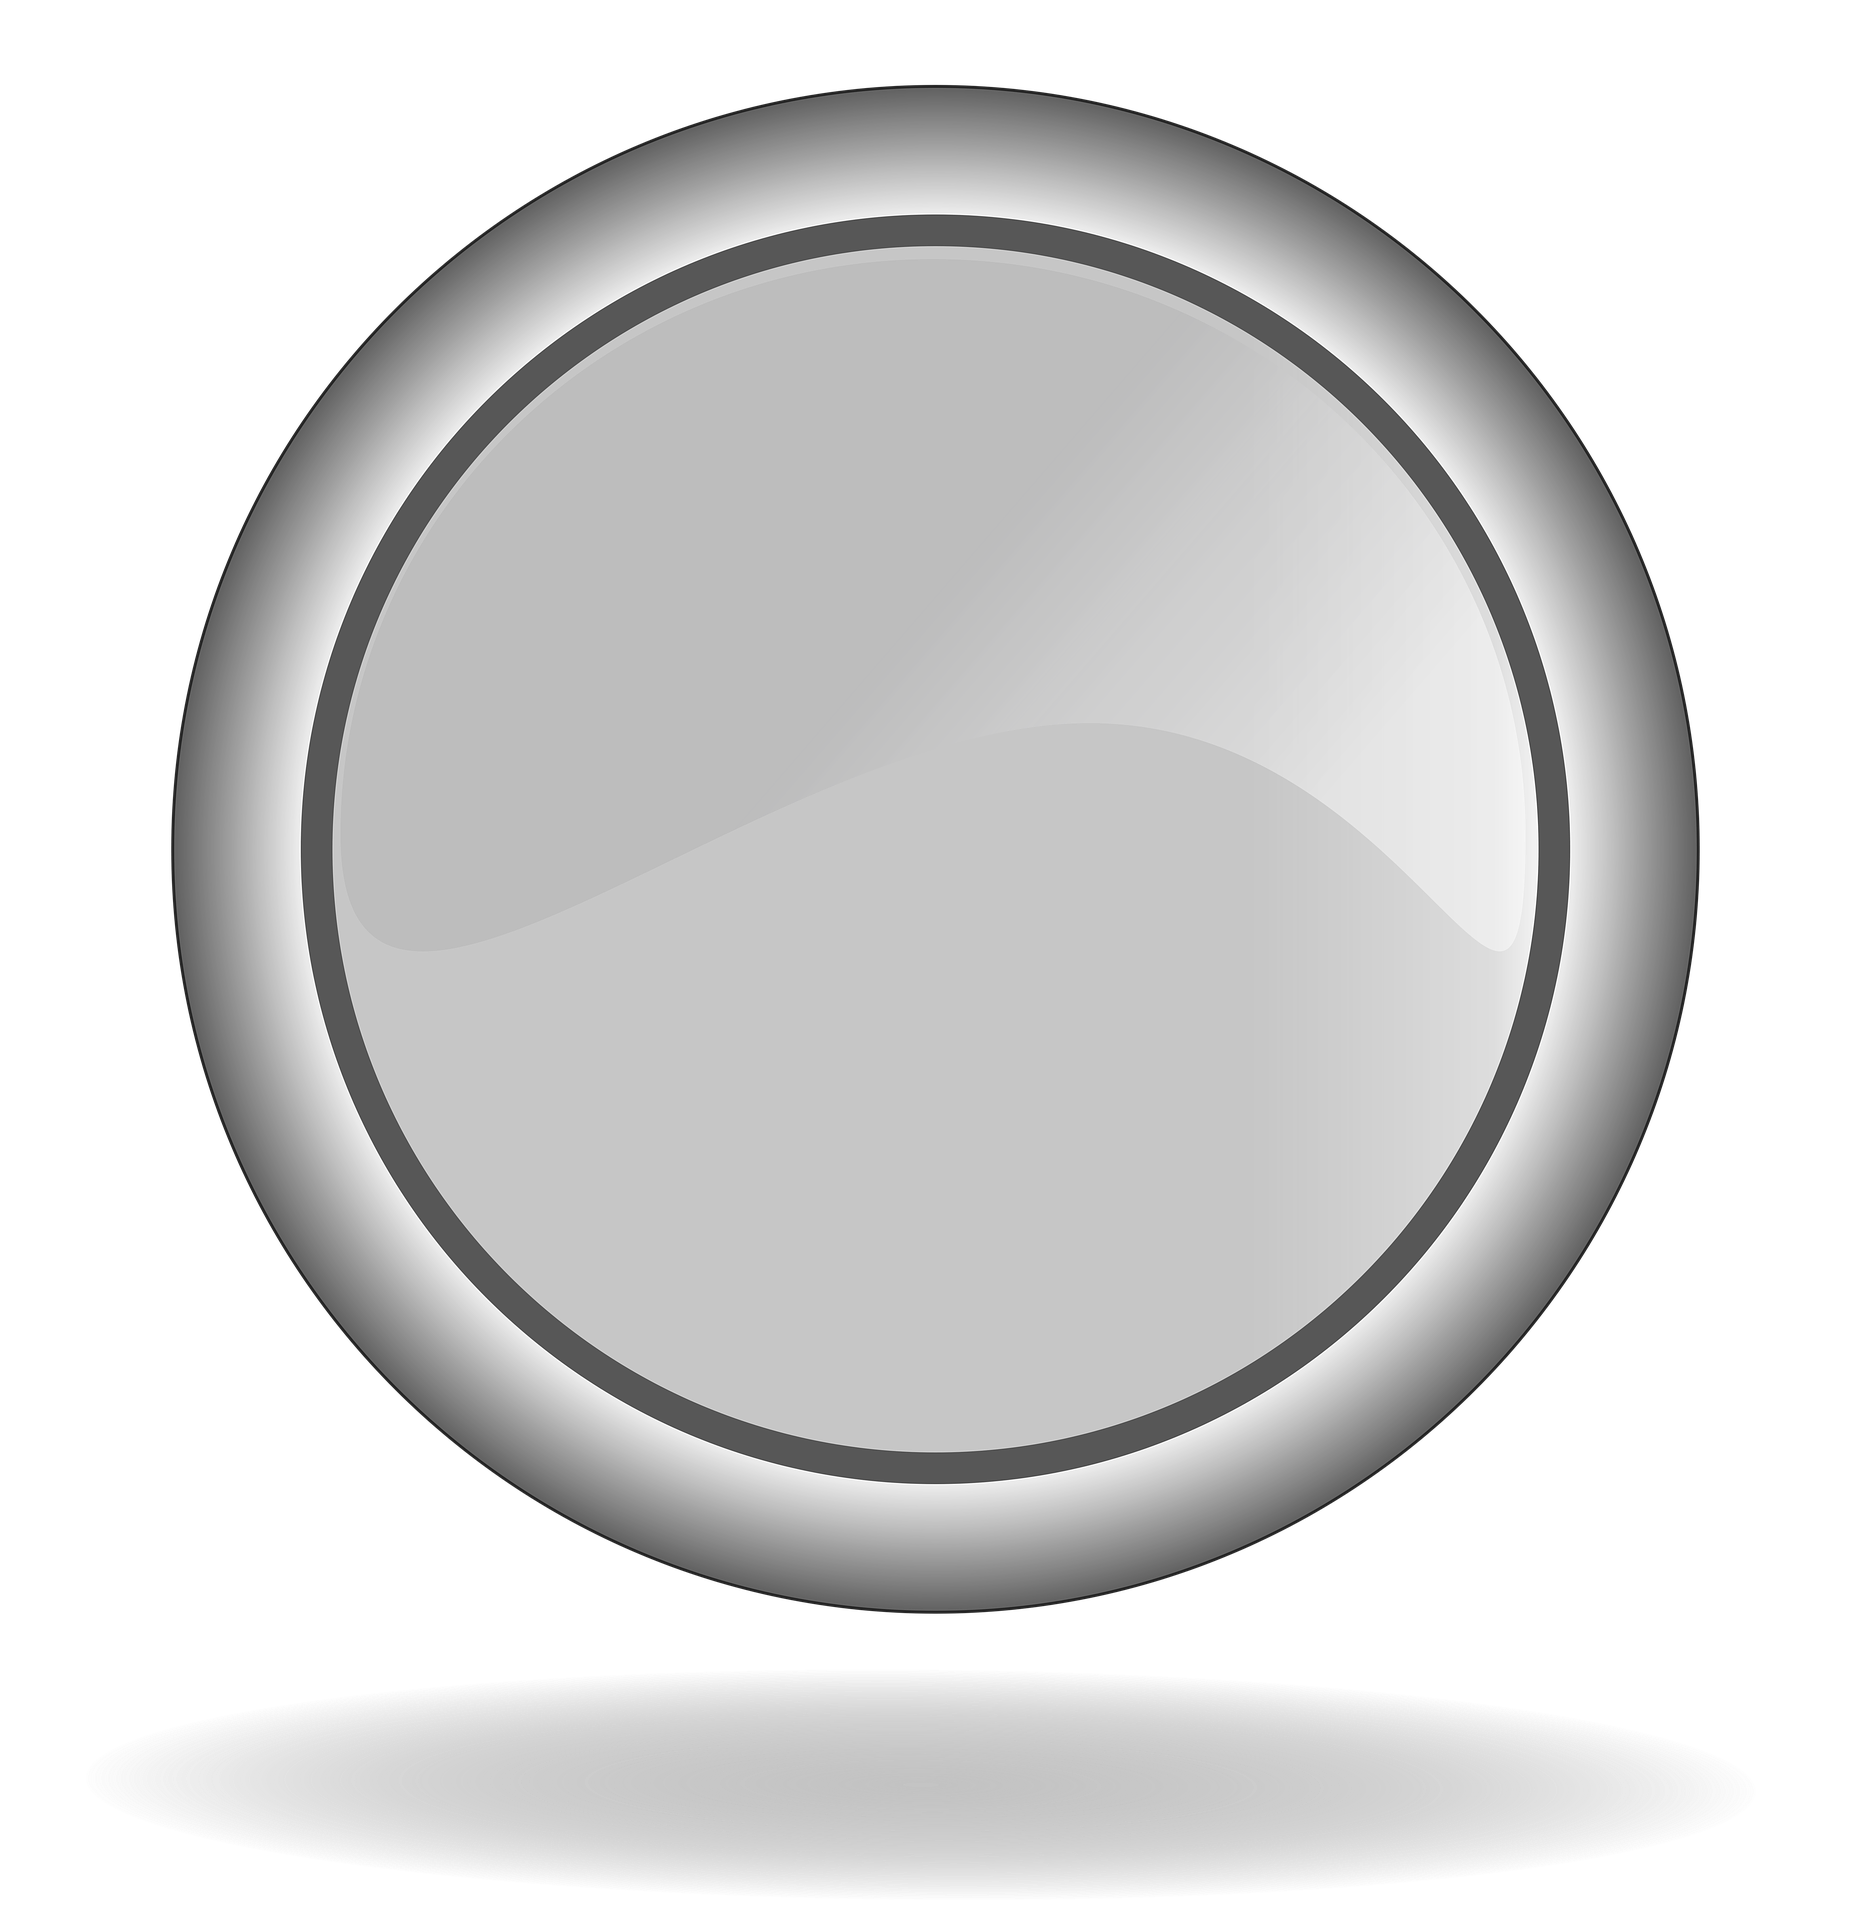 buttonabout